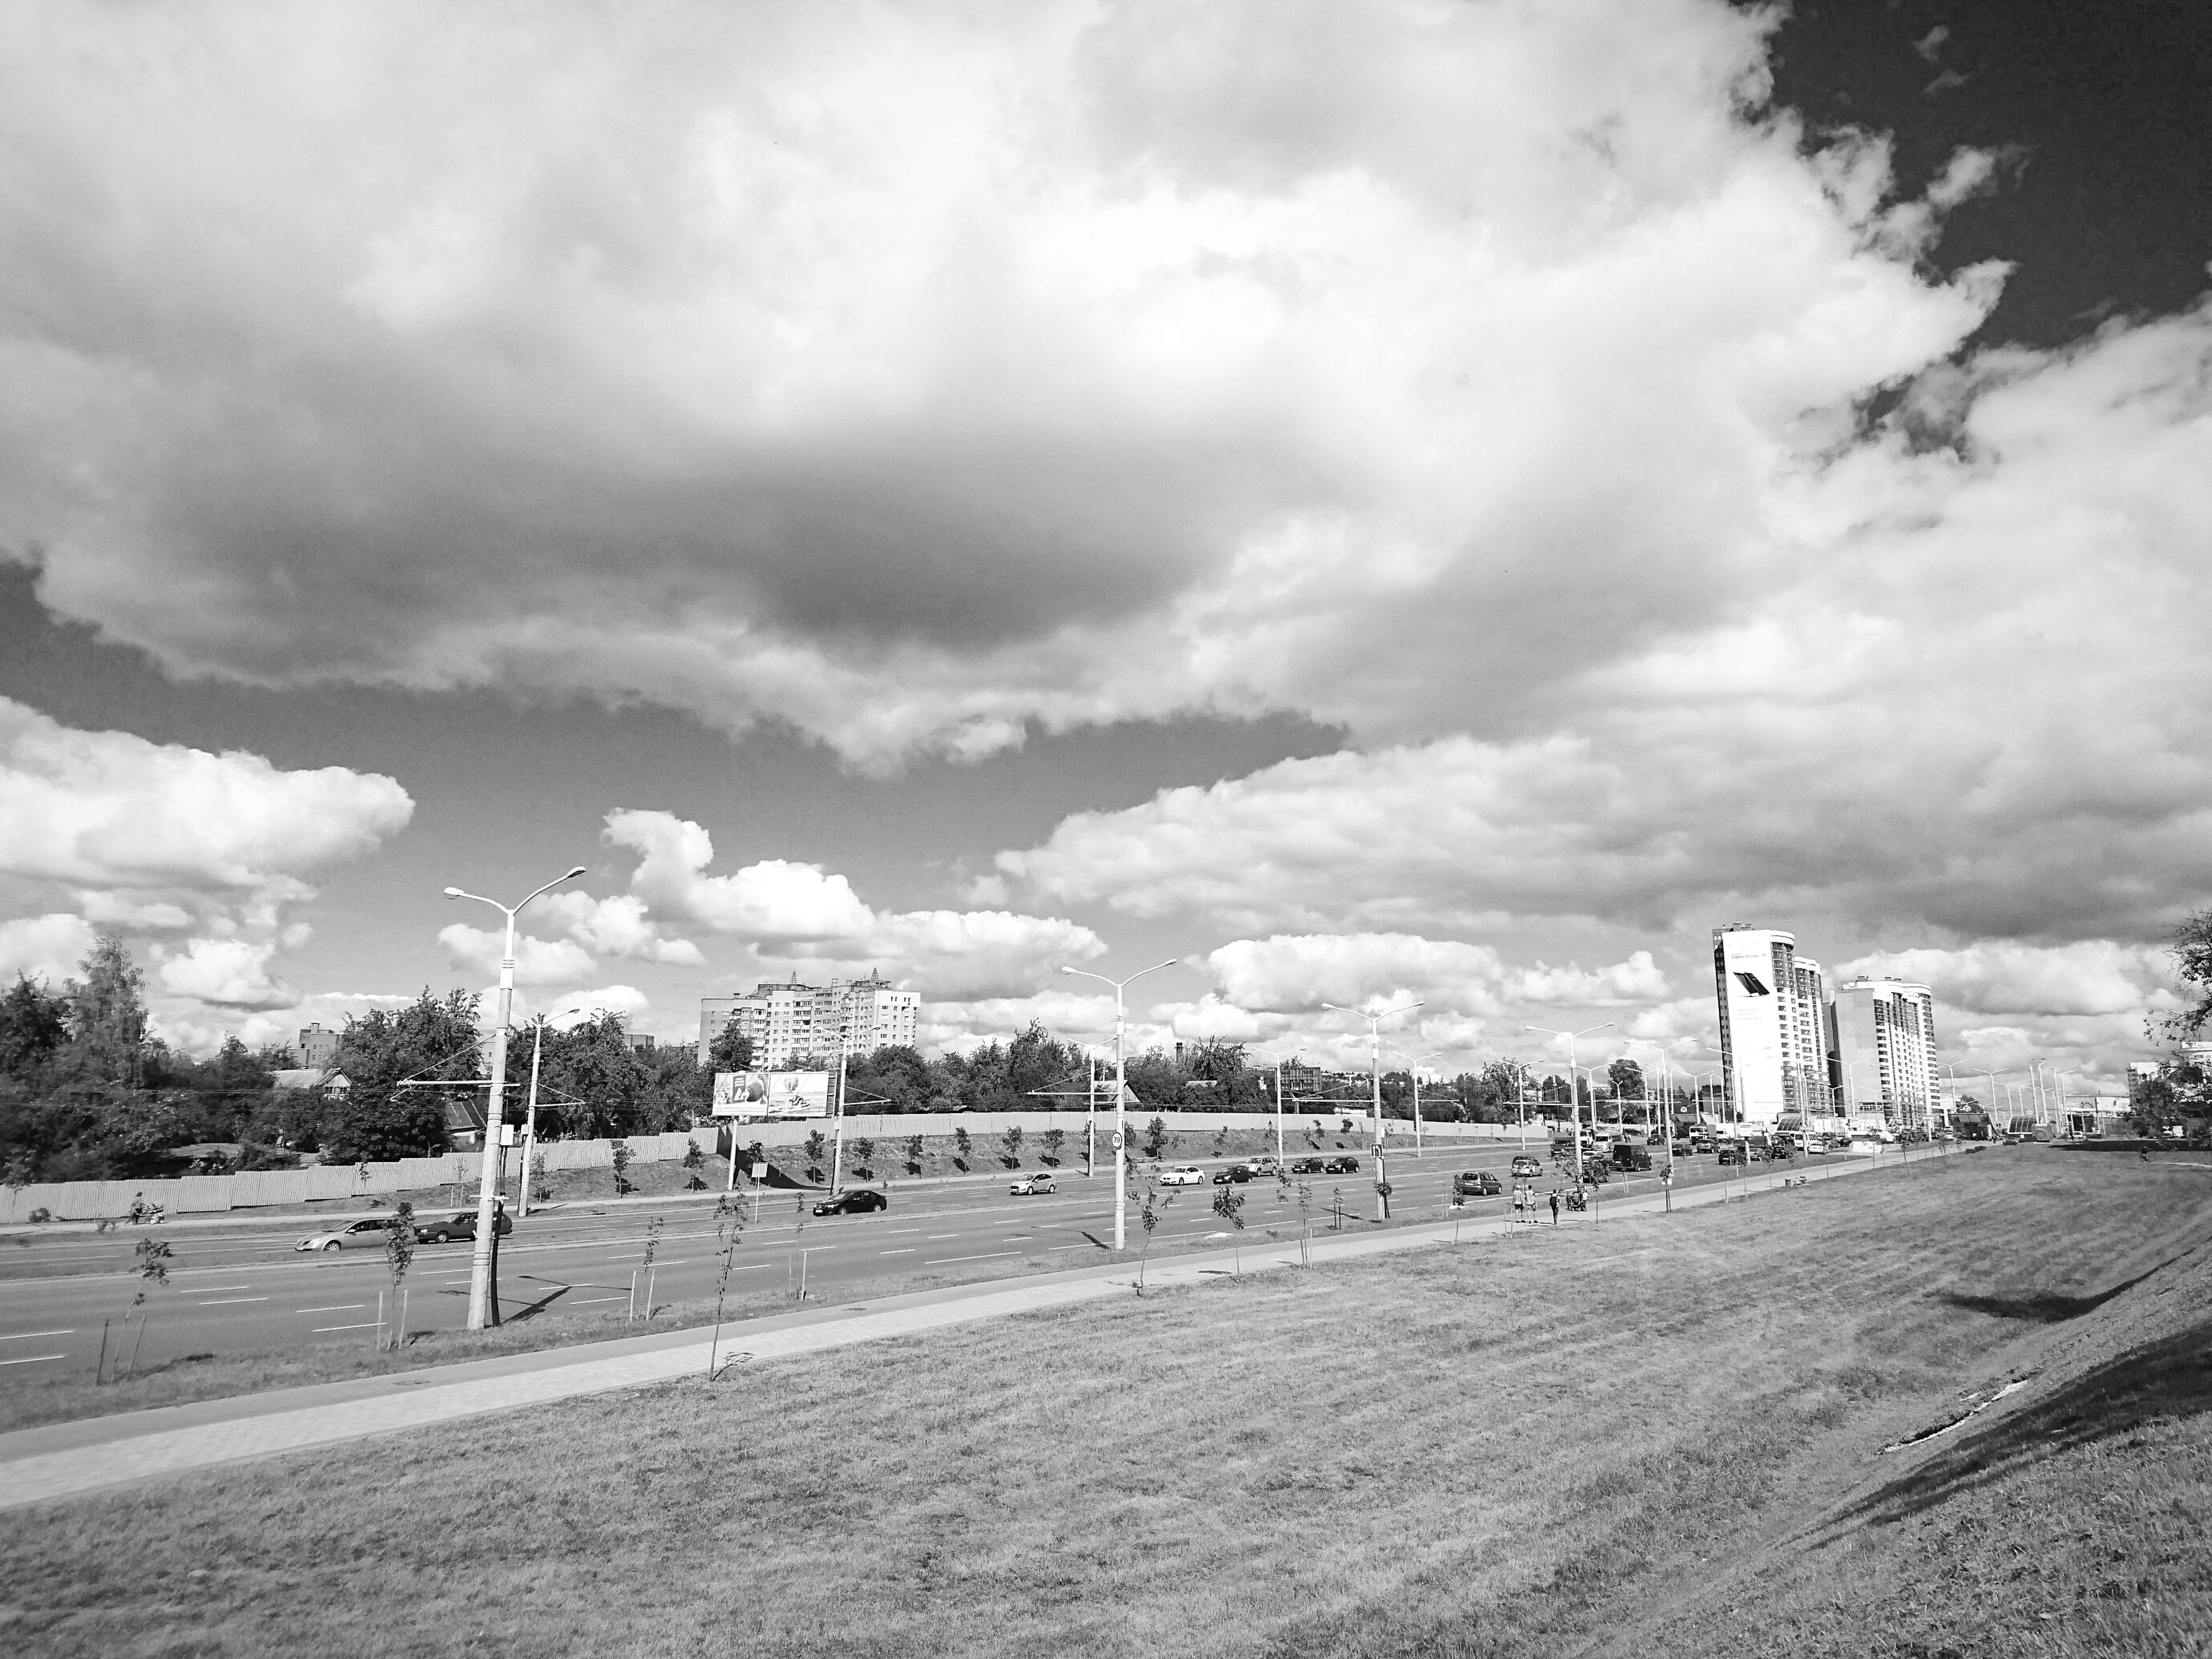 transportation, land vehicle, sky, mode of transport, car, cloud - sky, road, cloudy, cloud, day, outdoors, city life, the way forward, no people